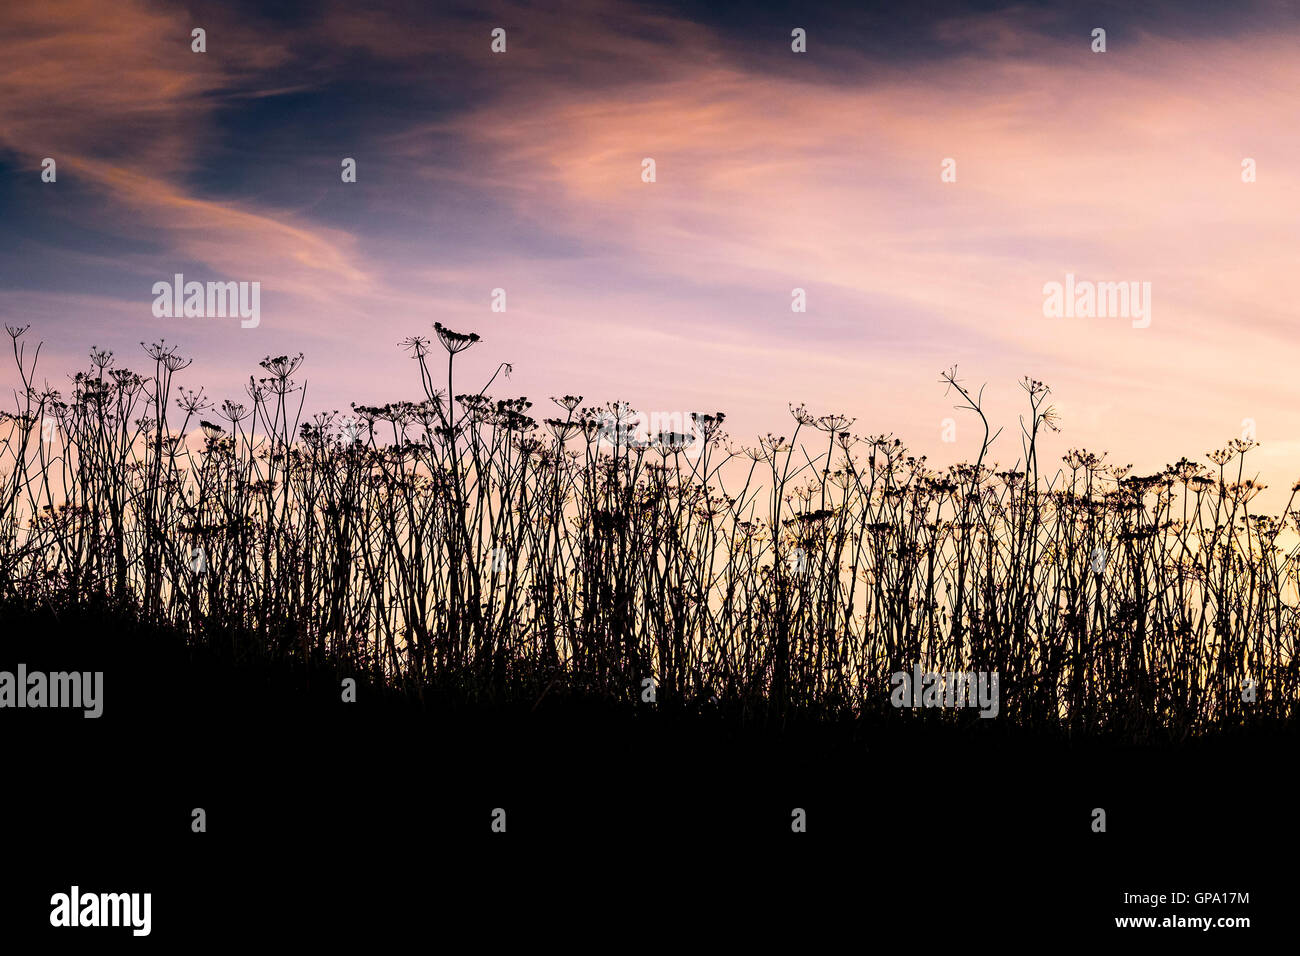 Cow Parsley seen in silhouette.  Anthriscus sylvestris. - Stock Image